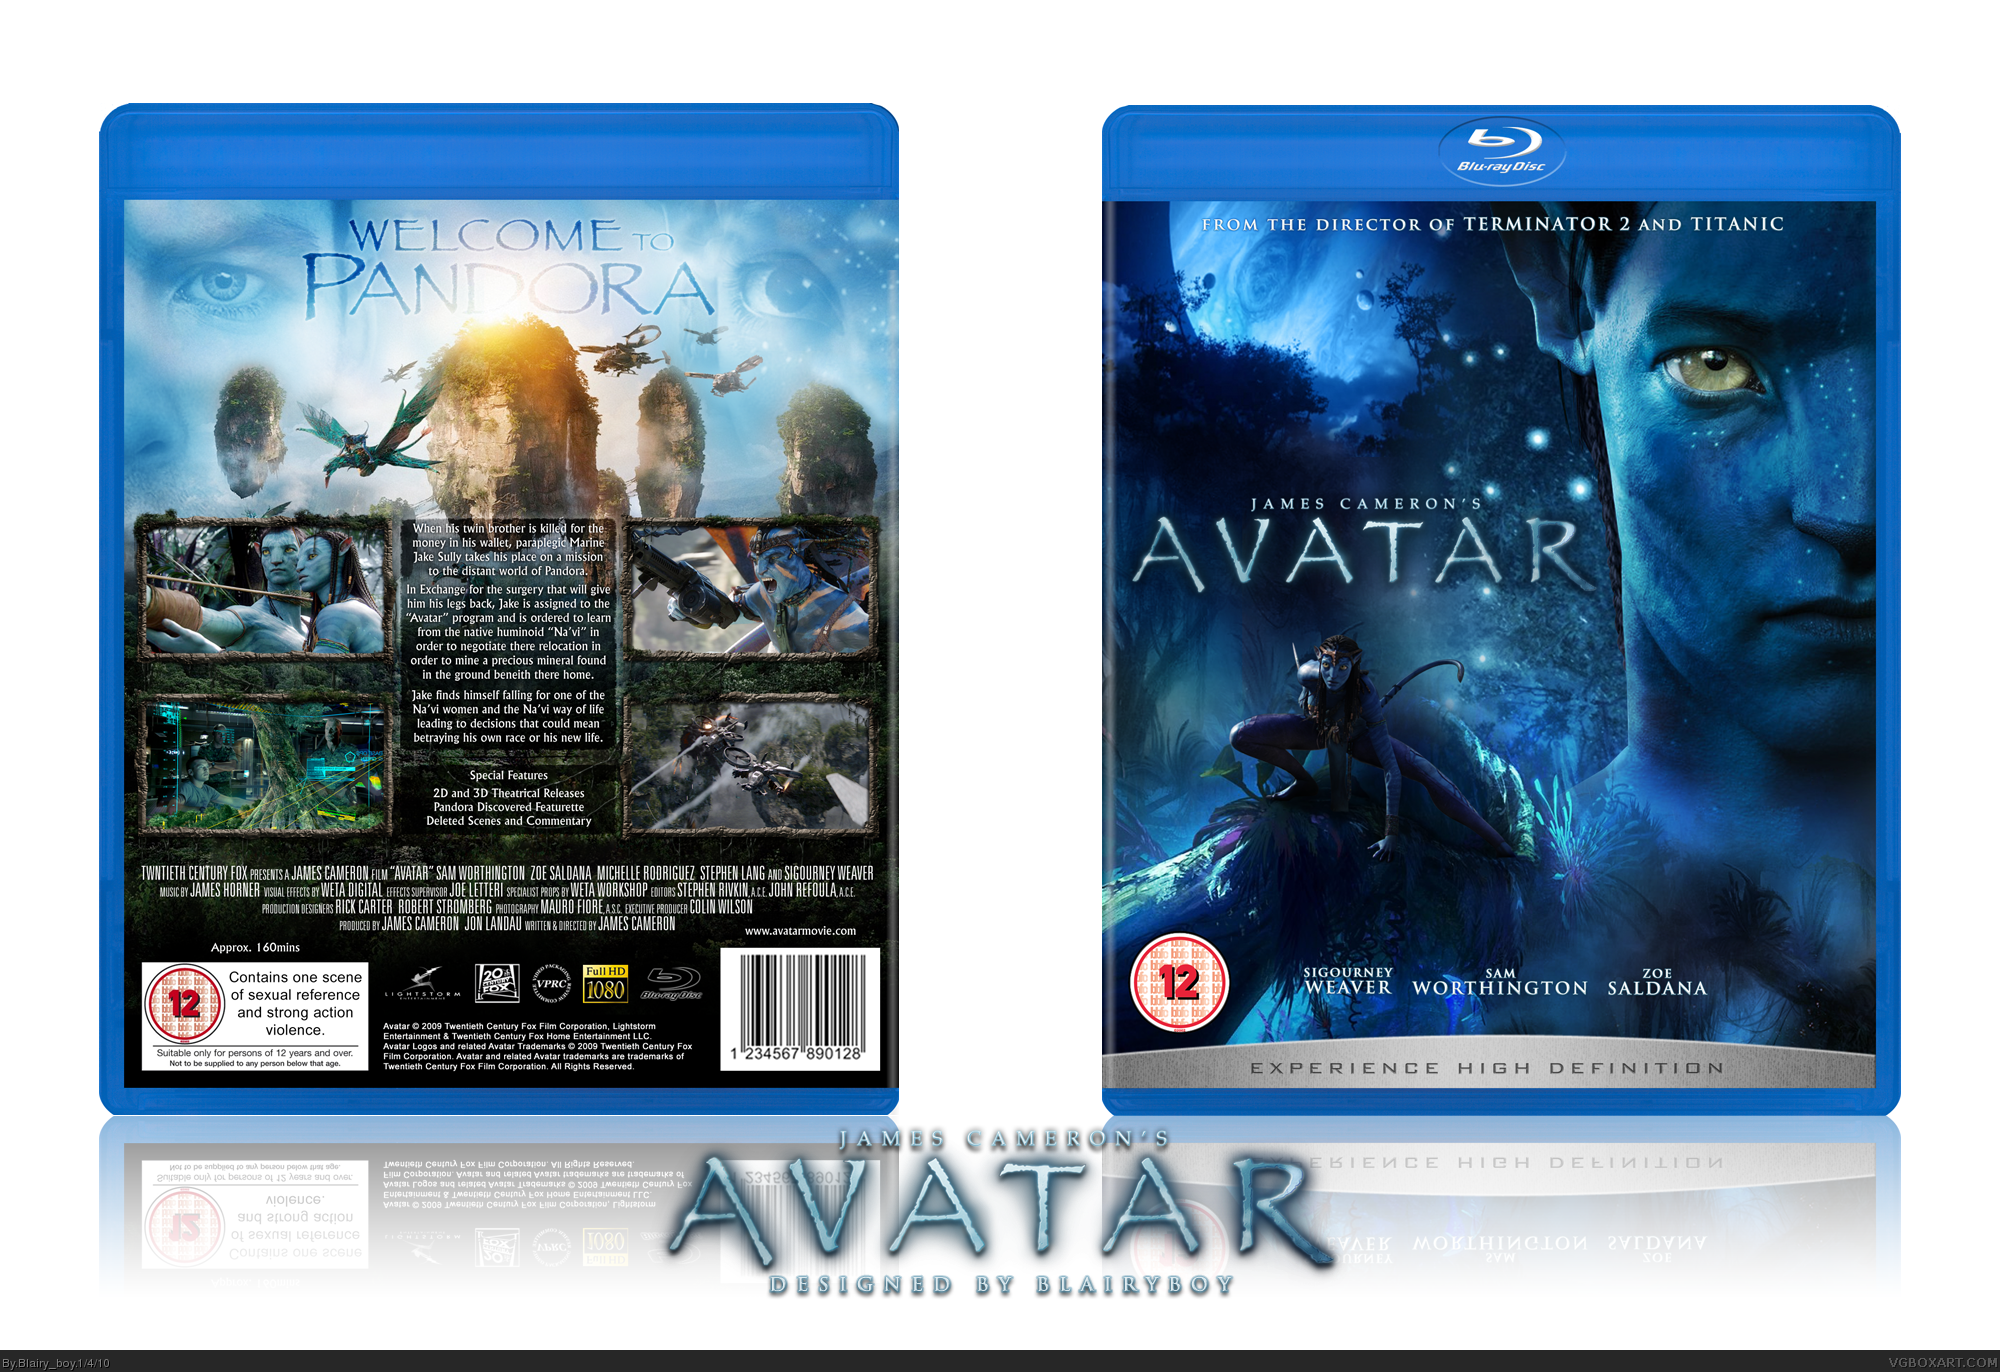 Viewing full size James Cameron's Avatar box cover